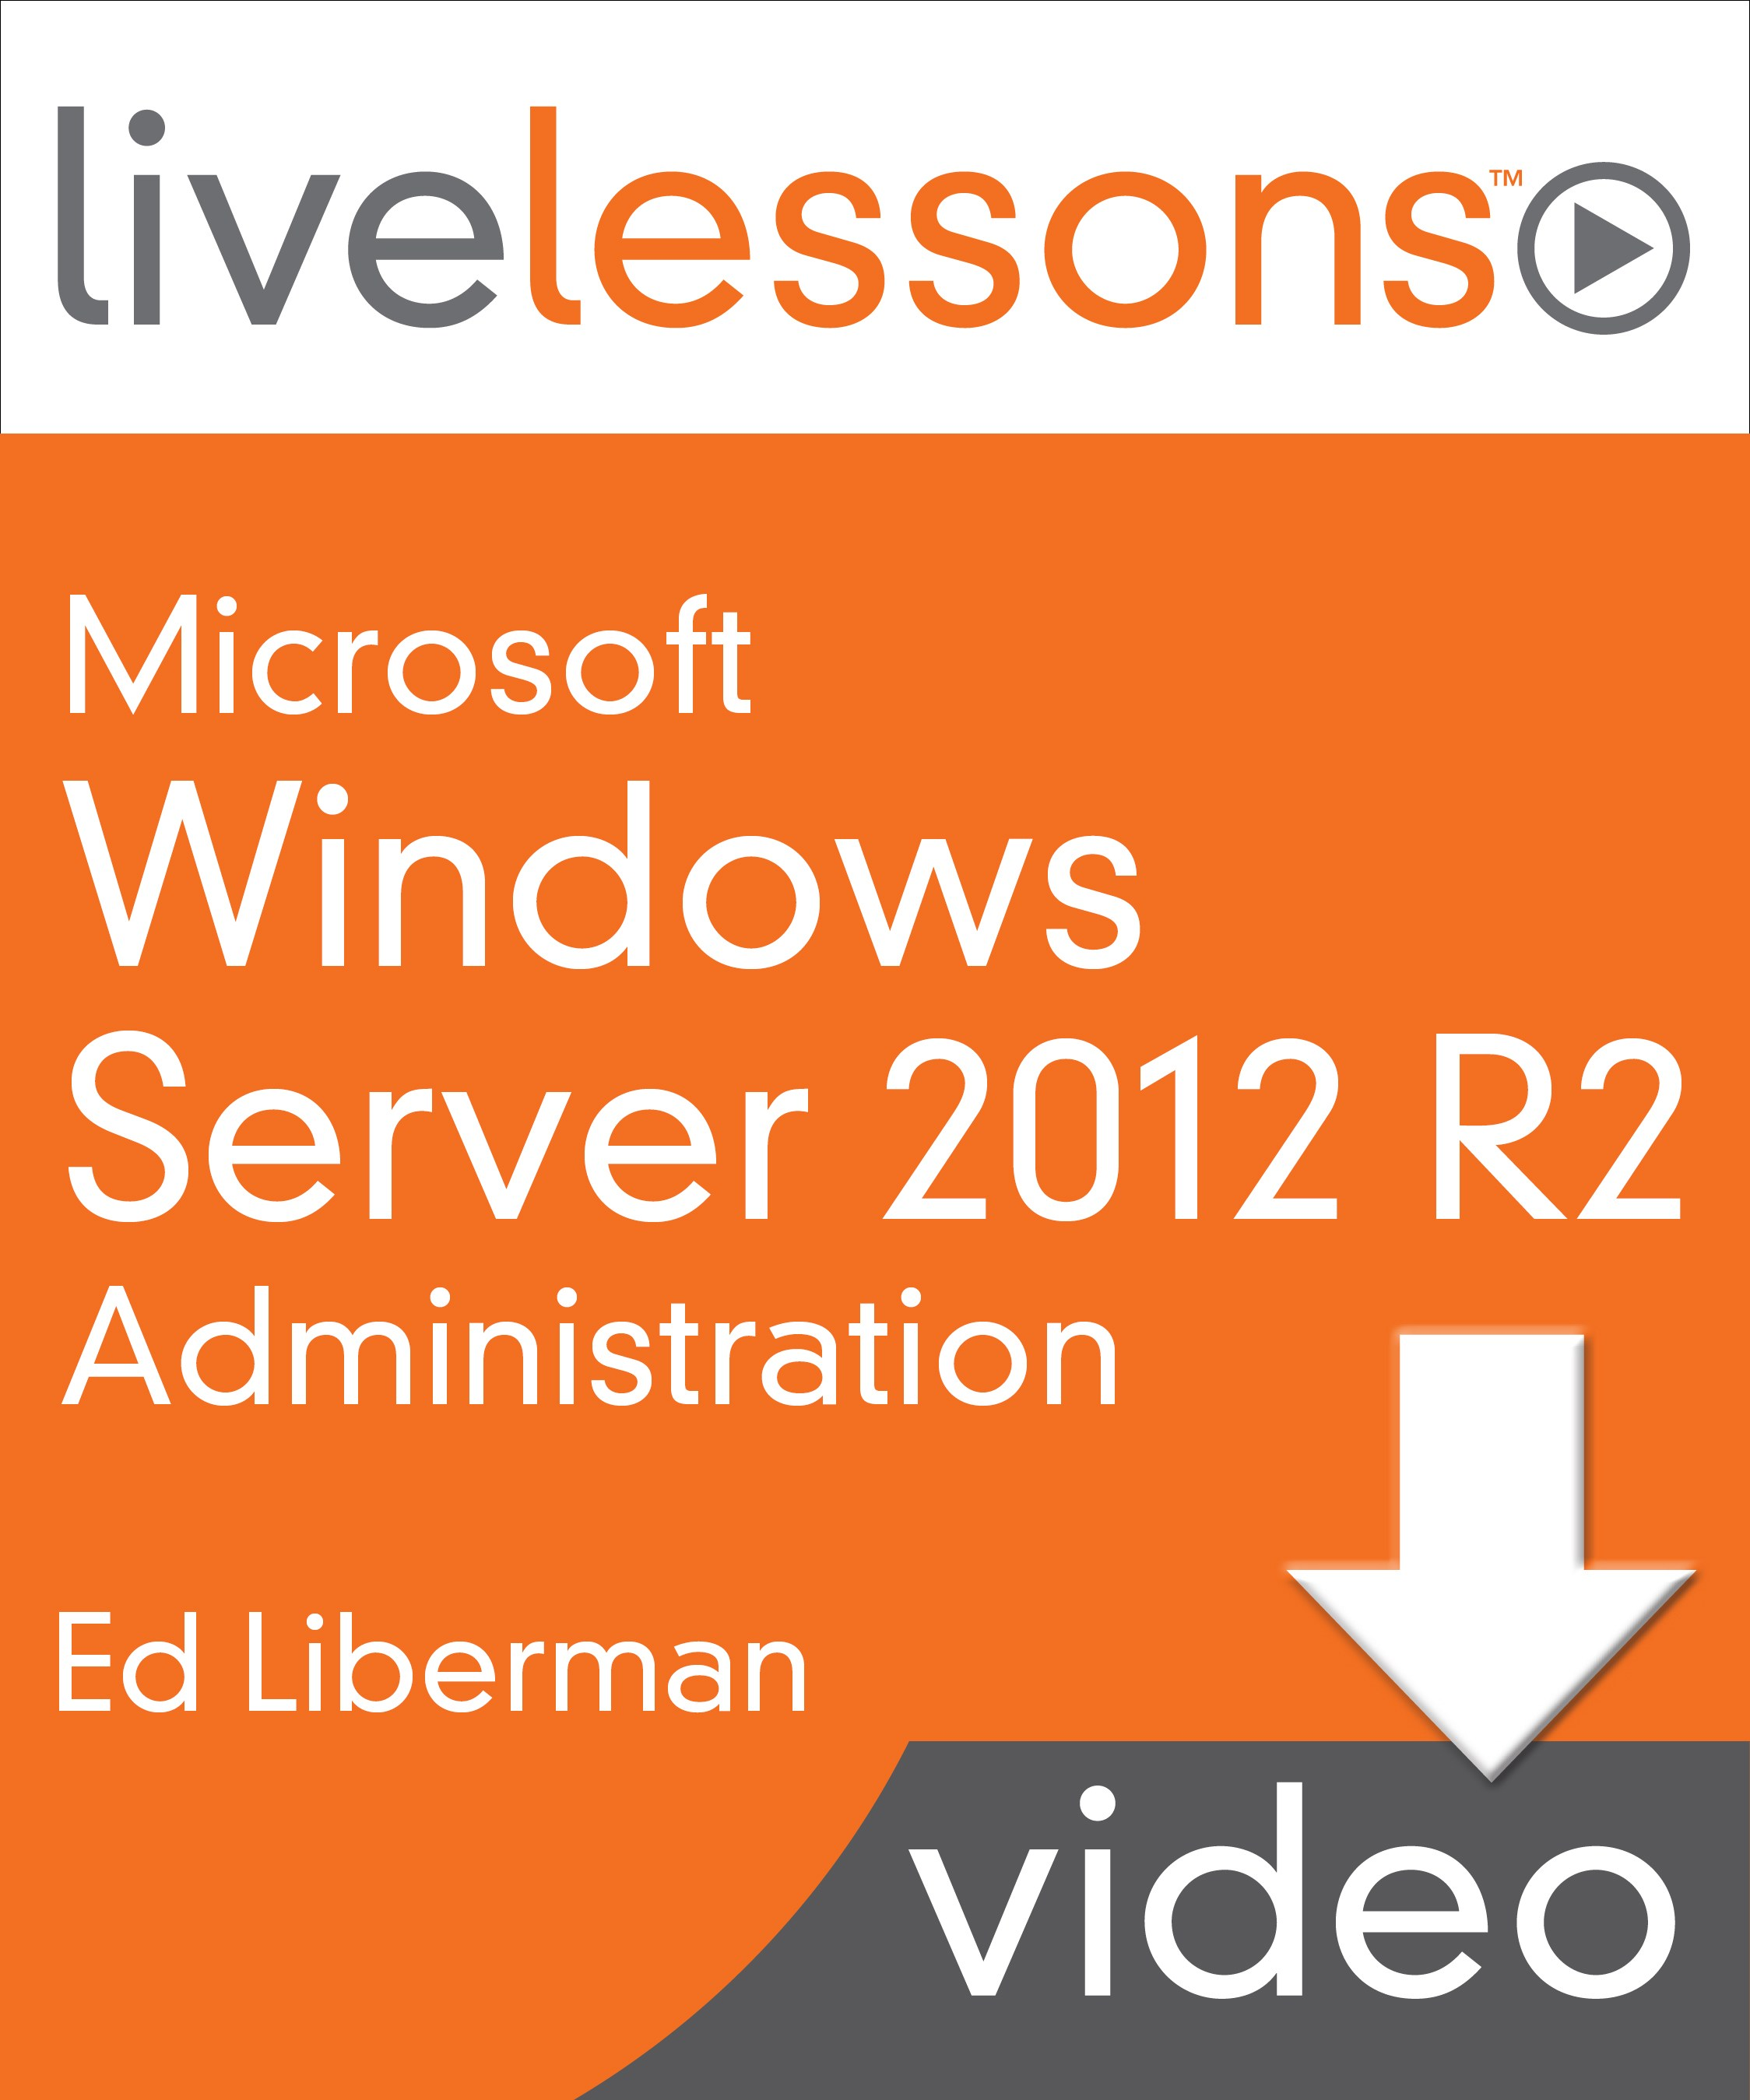 Lesson 1: Installing Windows Server 2012 R2, Downloadable Version